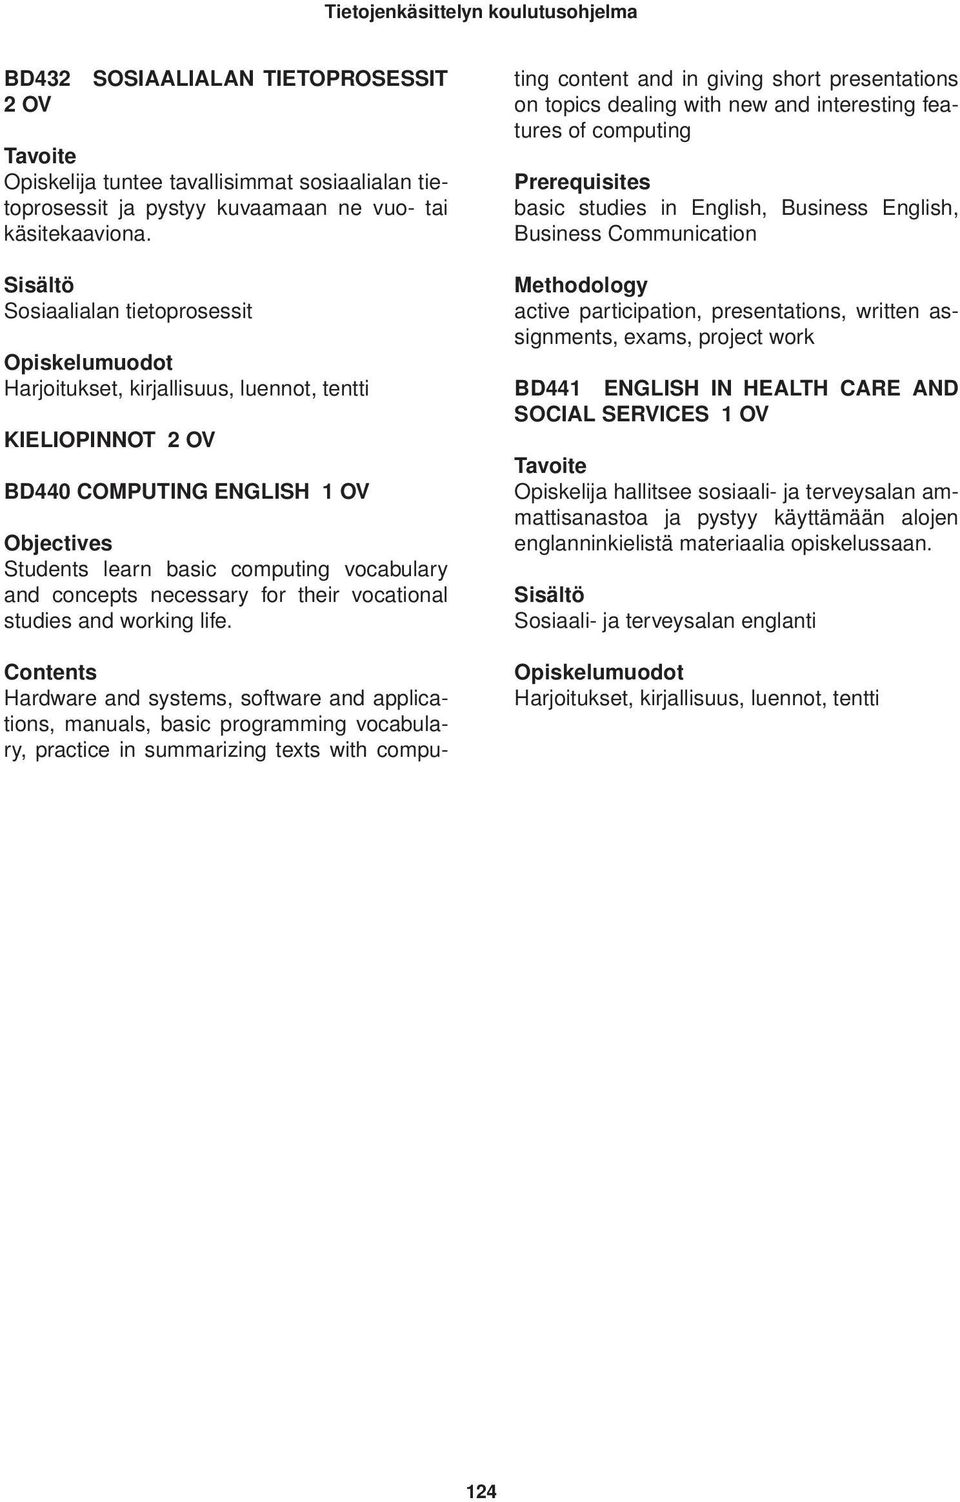 life. Contents Hardware and systems, software and applications, manuals, basic programming vocabulary, practice in summarizing texts with computing content and in giving short presentations on topics